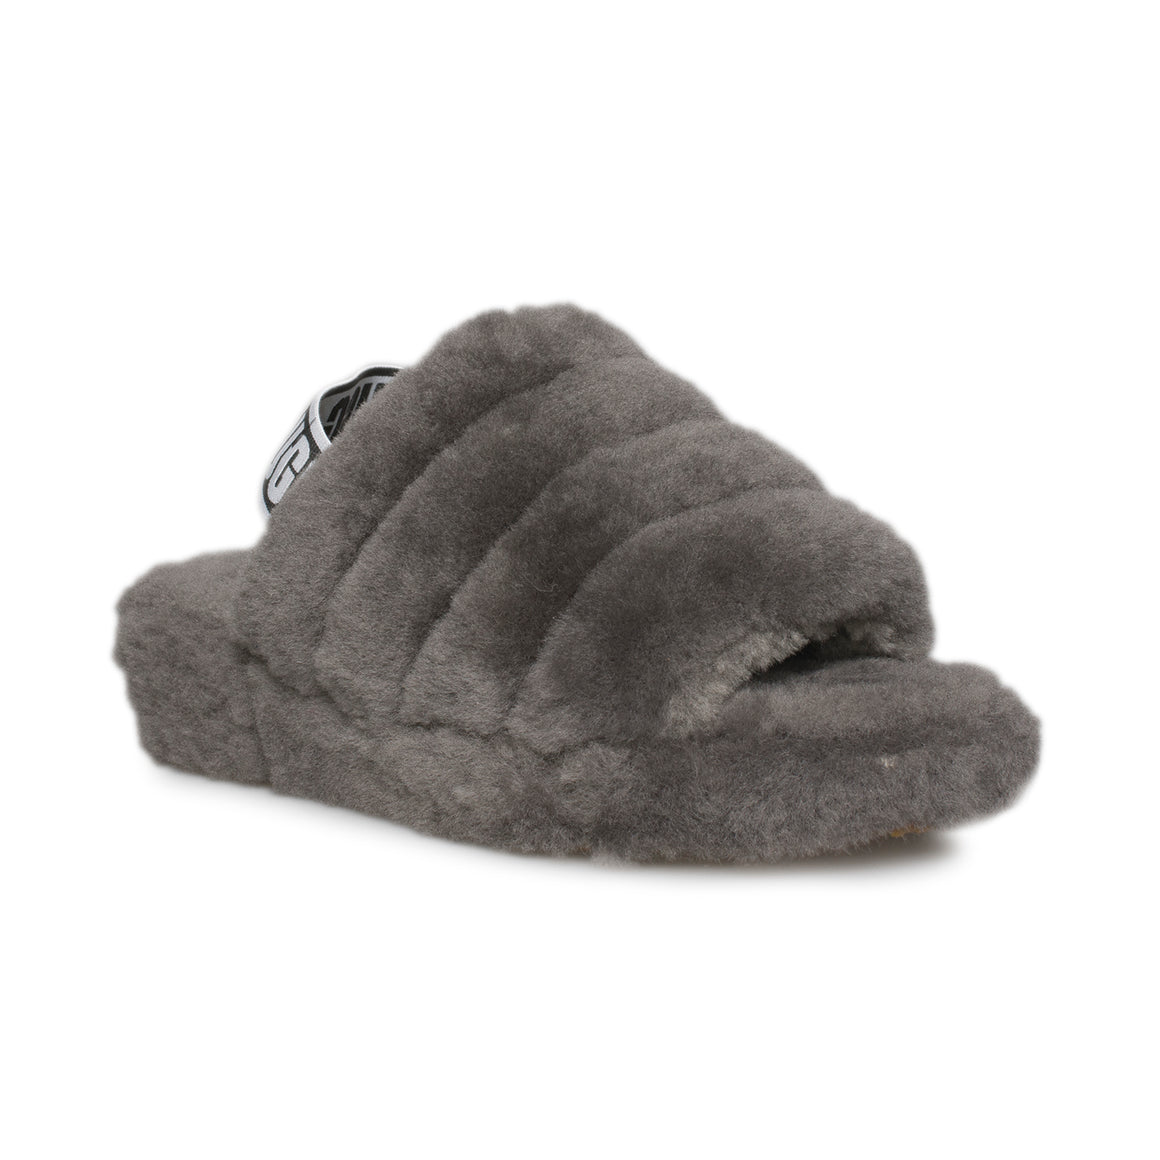 UGG Fluff Yeah Slide Charcoal Slippers - Women's